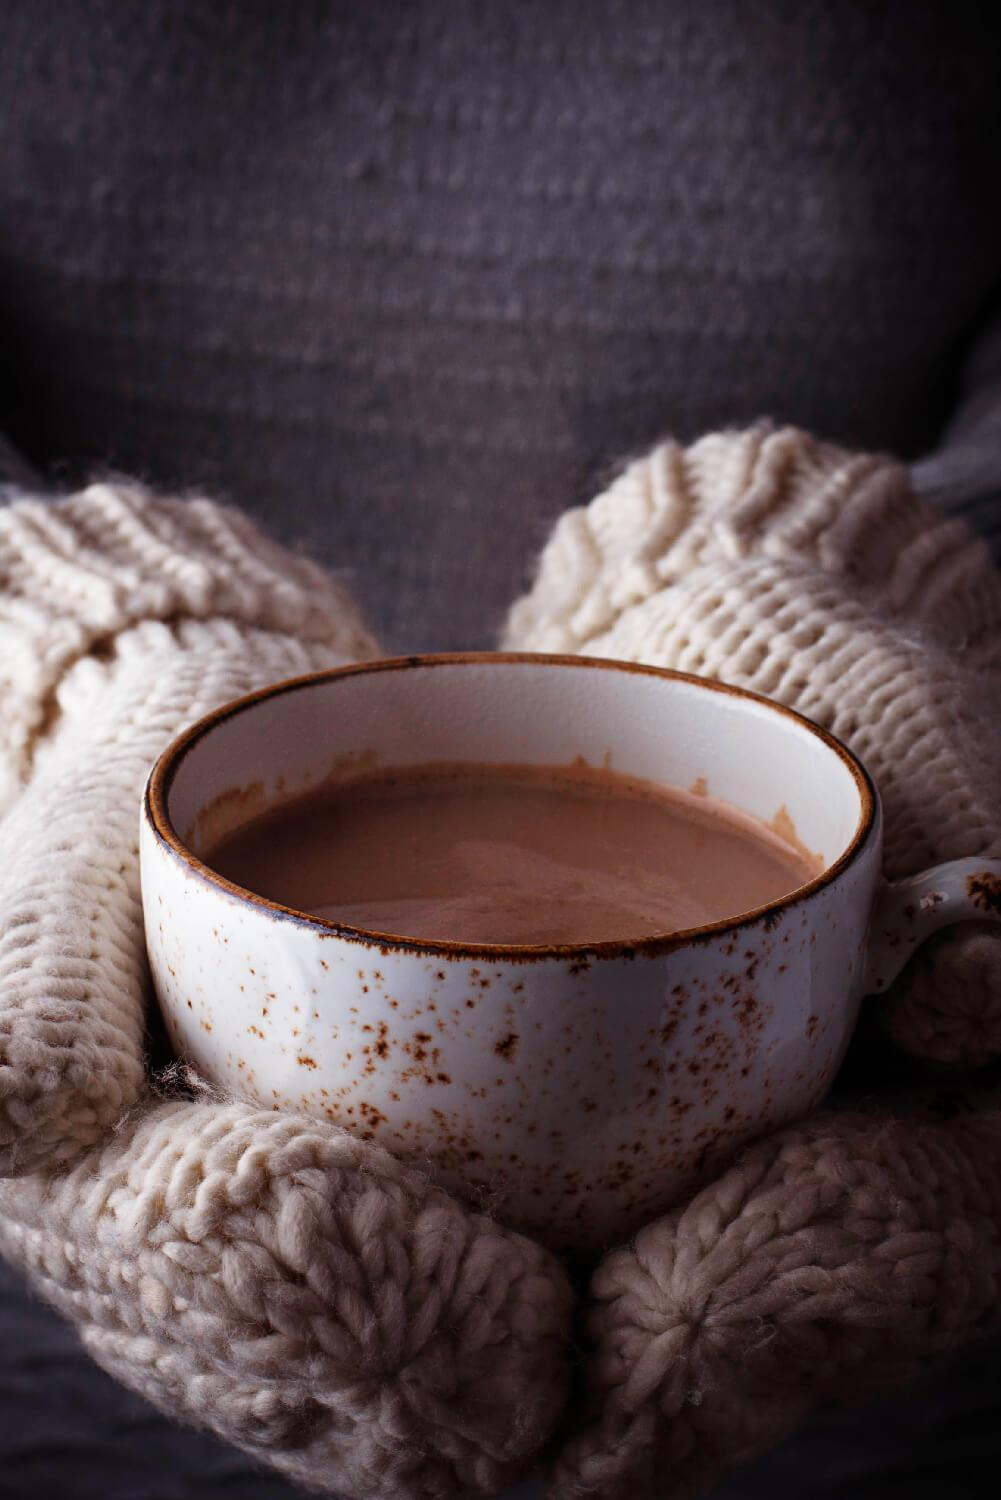 WHIP UP A SINFULLY DELICIOUS PIPING HOT CHOCOLATE OR SOOTHING COLD MILKSHAKE AT HOME